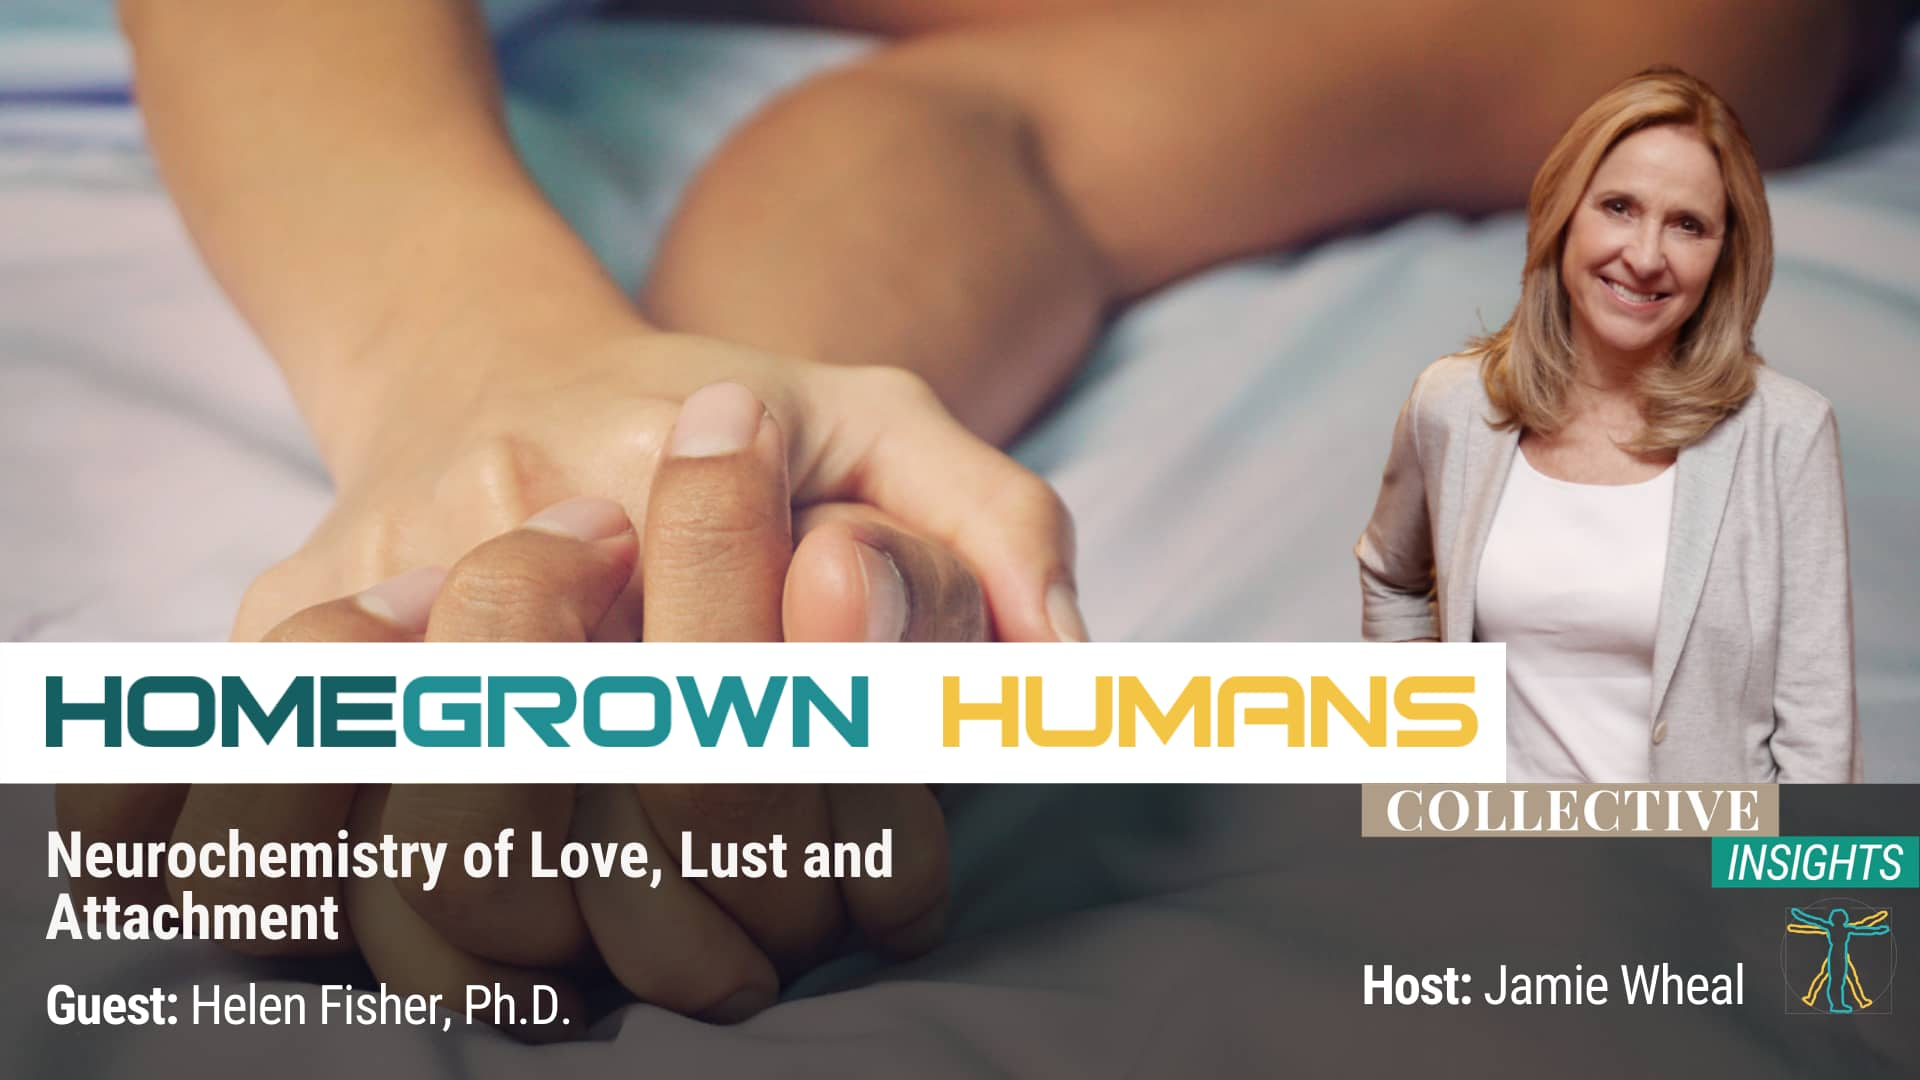 HomeGrown Humans - Helen Fisher, Ph.D. - Sexuality - Hosted by Jamie Wheal